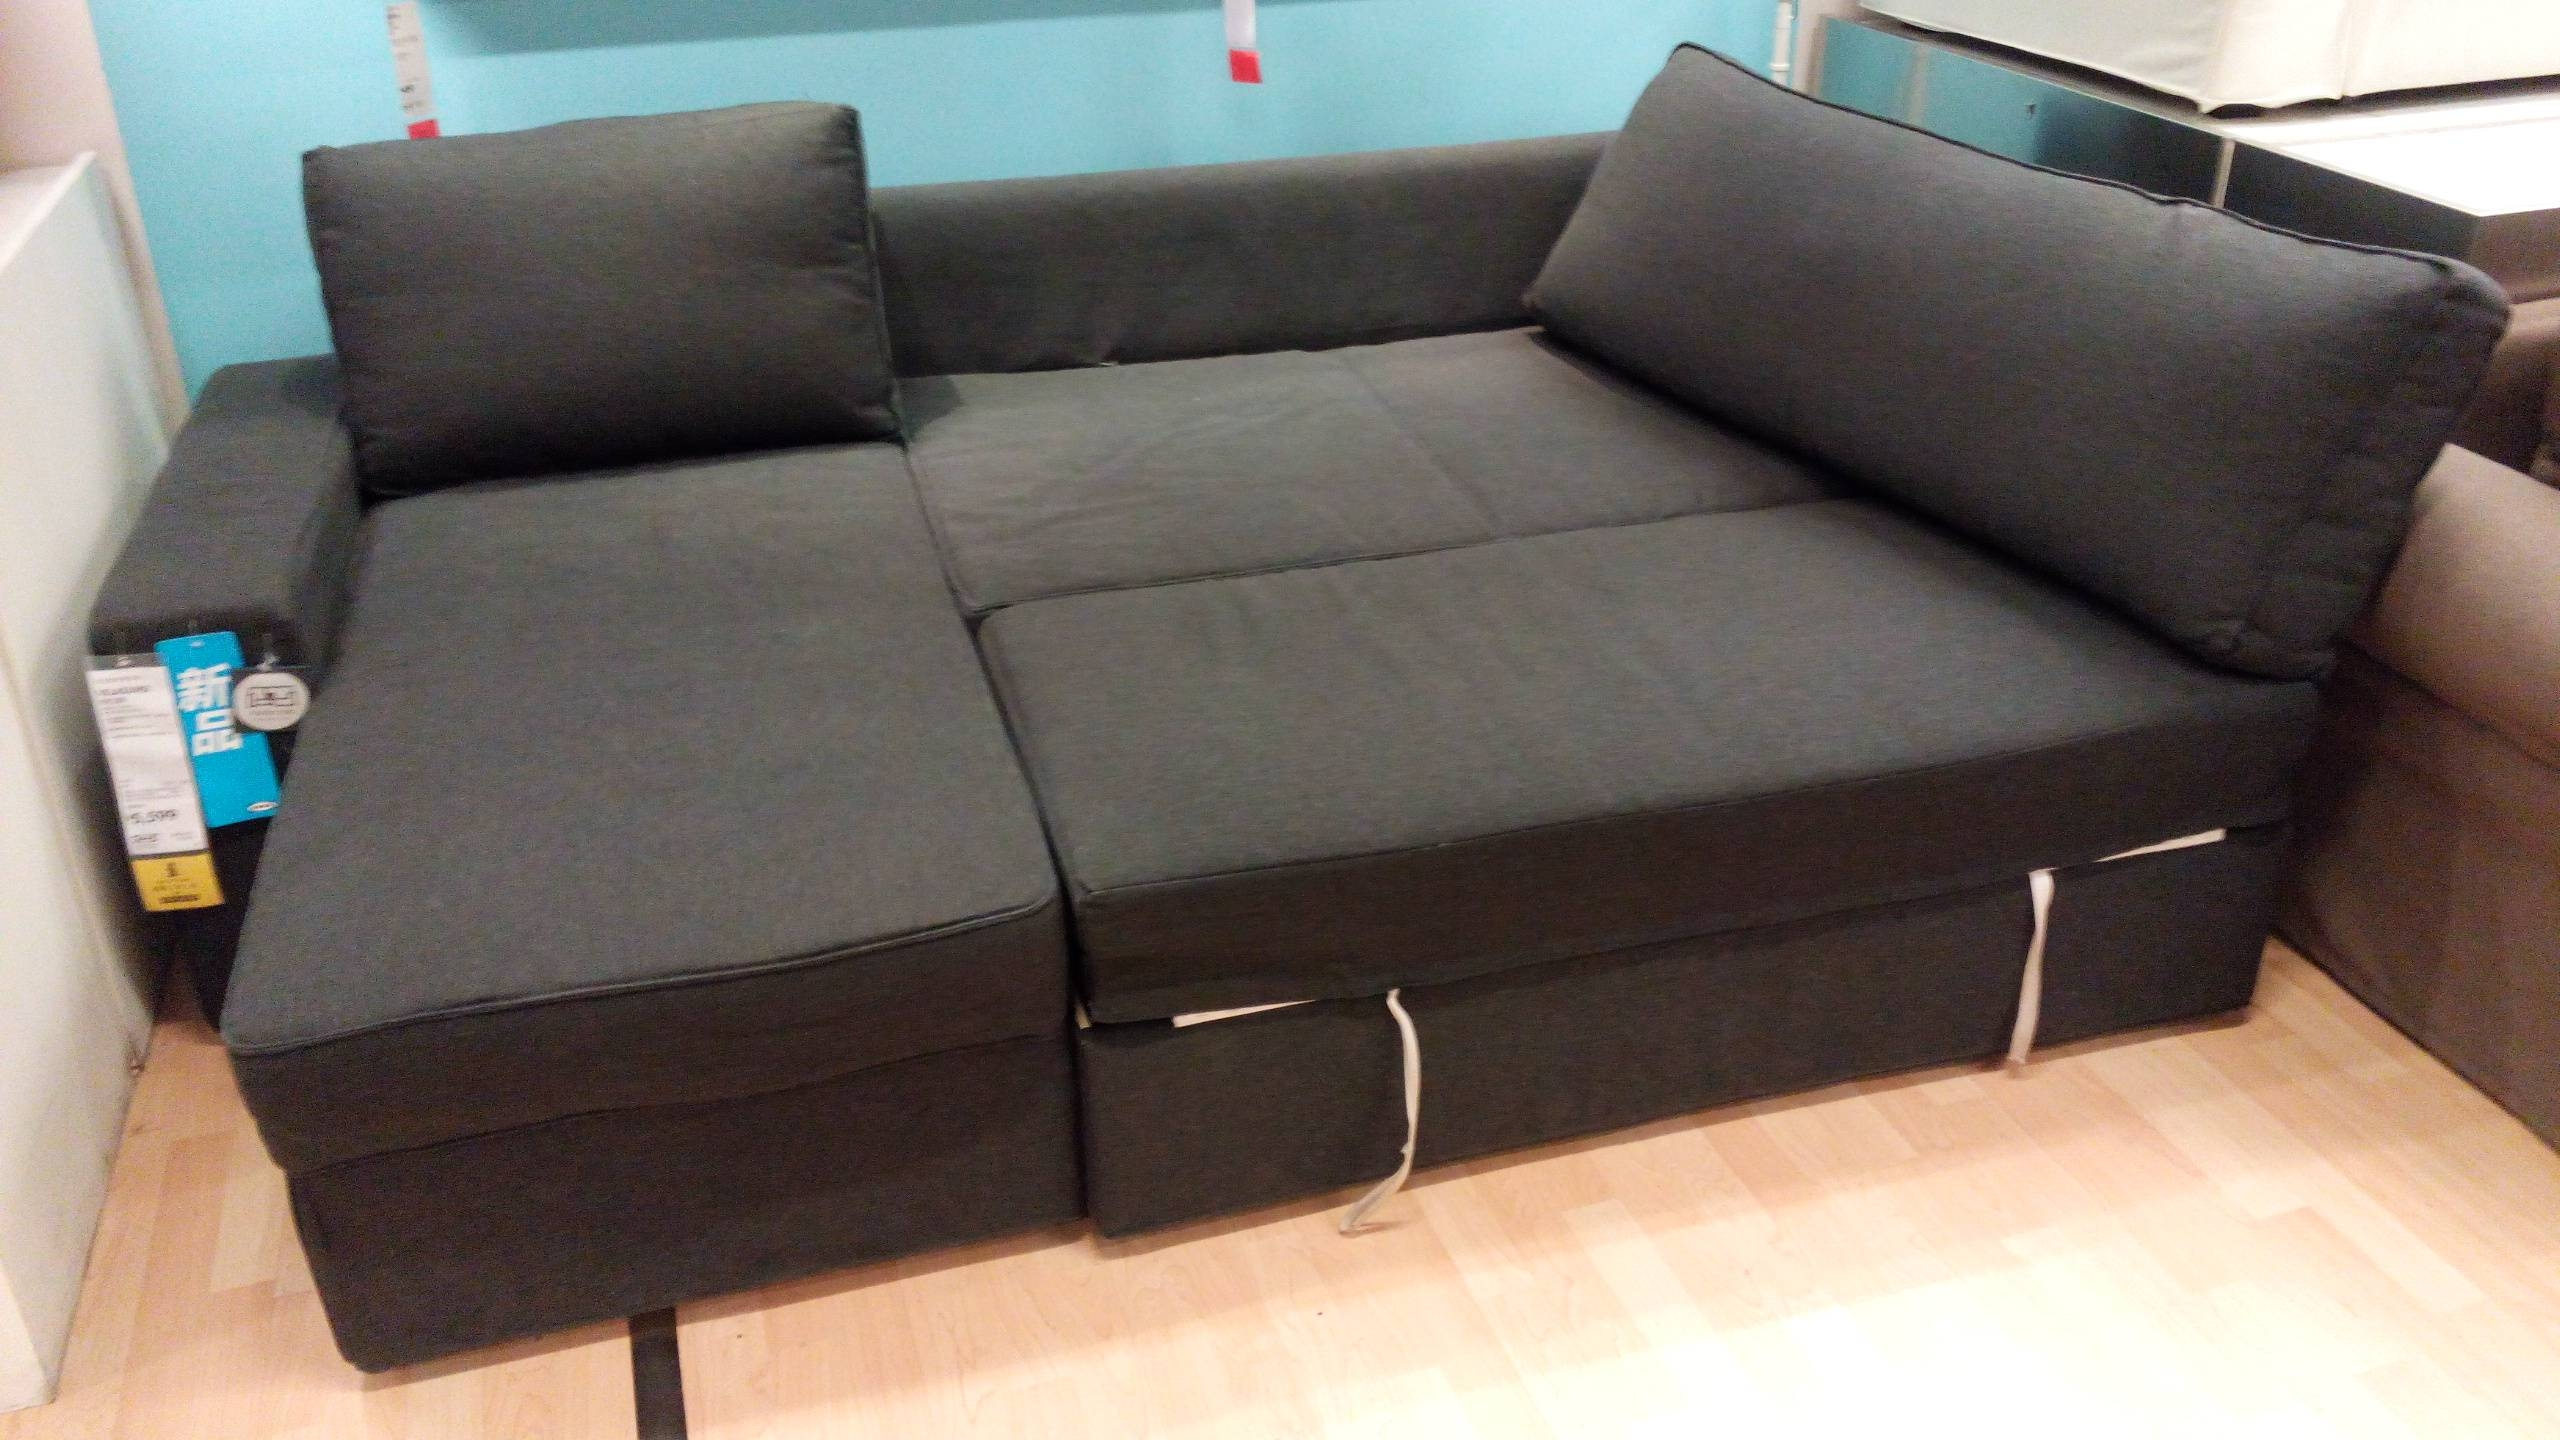 Fresh Manstad Sectional Sofa Bed Storage From Ikea 42 For Your for Manstad Sofa Bed With Storage From Ikea (Image 1 of 25)